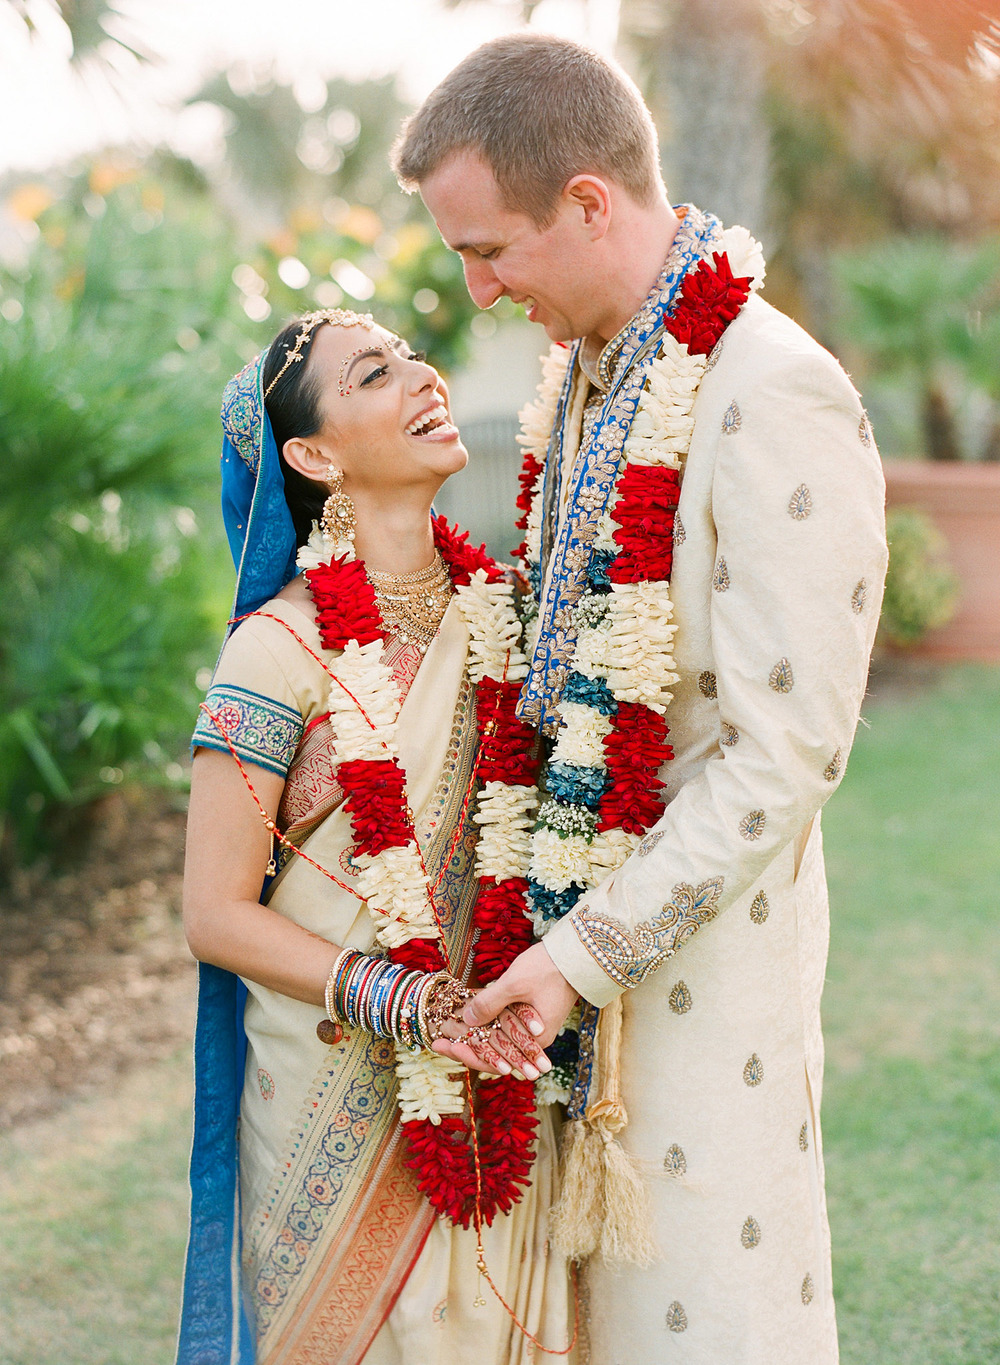 bride and groom after their hindu wedding ceremony at this Indian Wedding in Florida photographed by Destination Wedding Photographer, LExia Frank - a top indian wedding photographer - who shoots film for luxury indian weddings preferring the soft skin tones and vibrant colors for indian weddings in india and worldwide